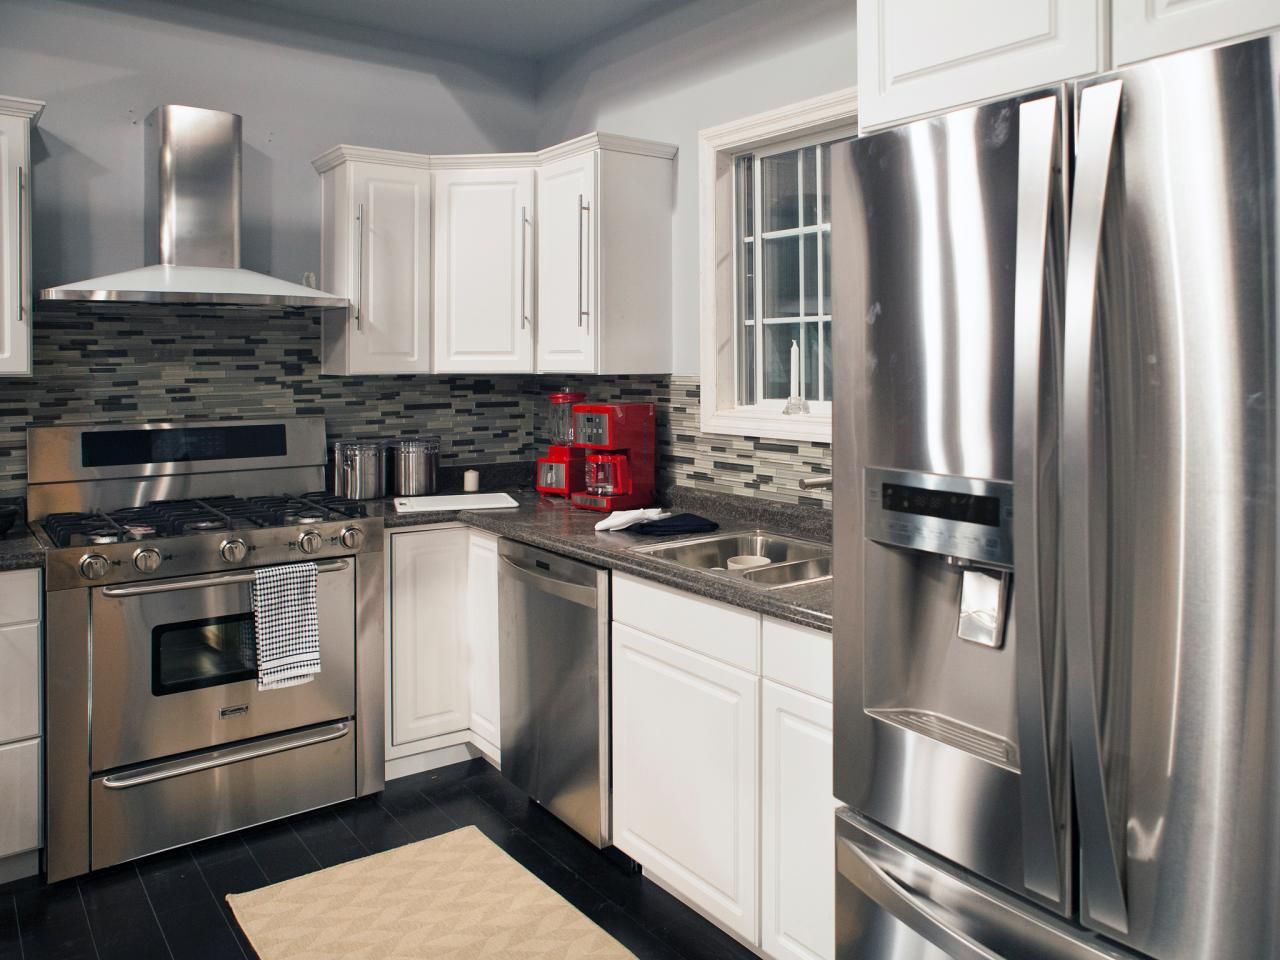 Dark Gray Kitchen Cabinets Stainless Steel Appliances Dark Gray Countertops And A Gray